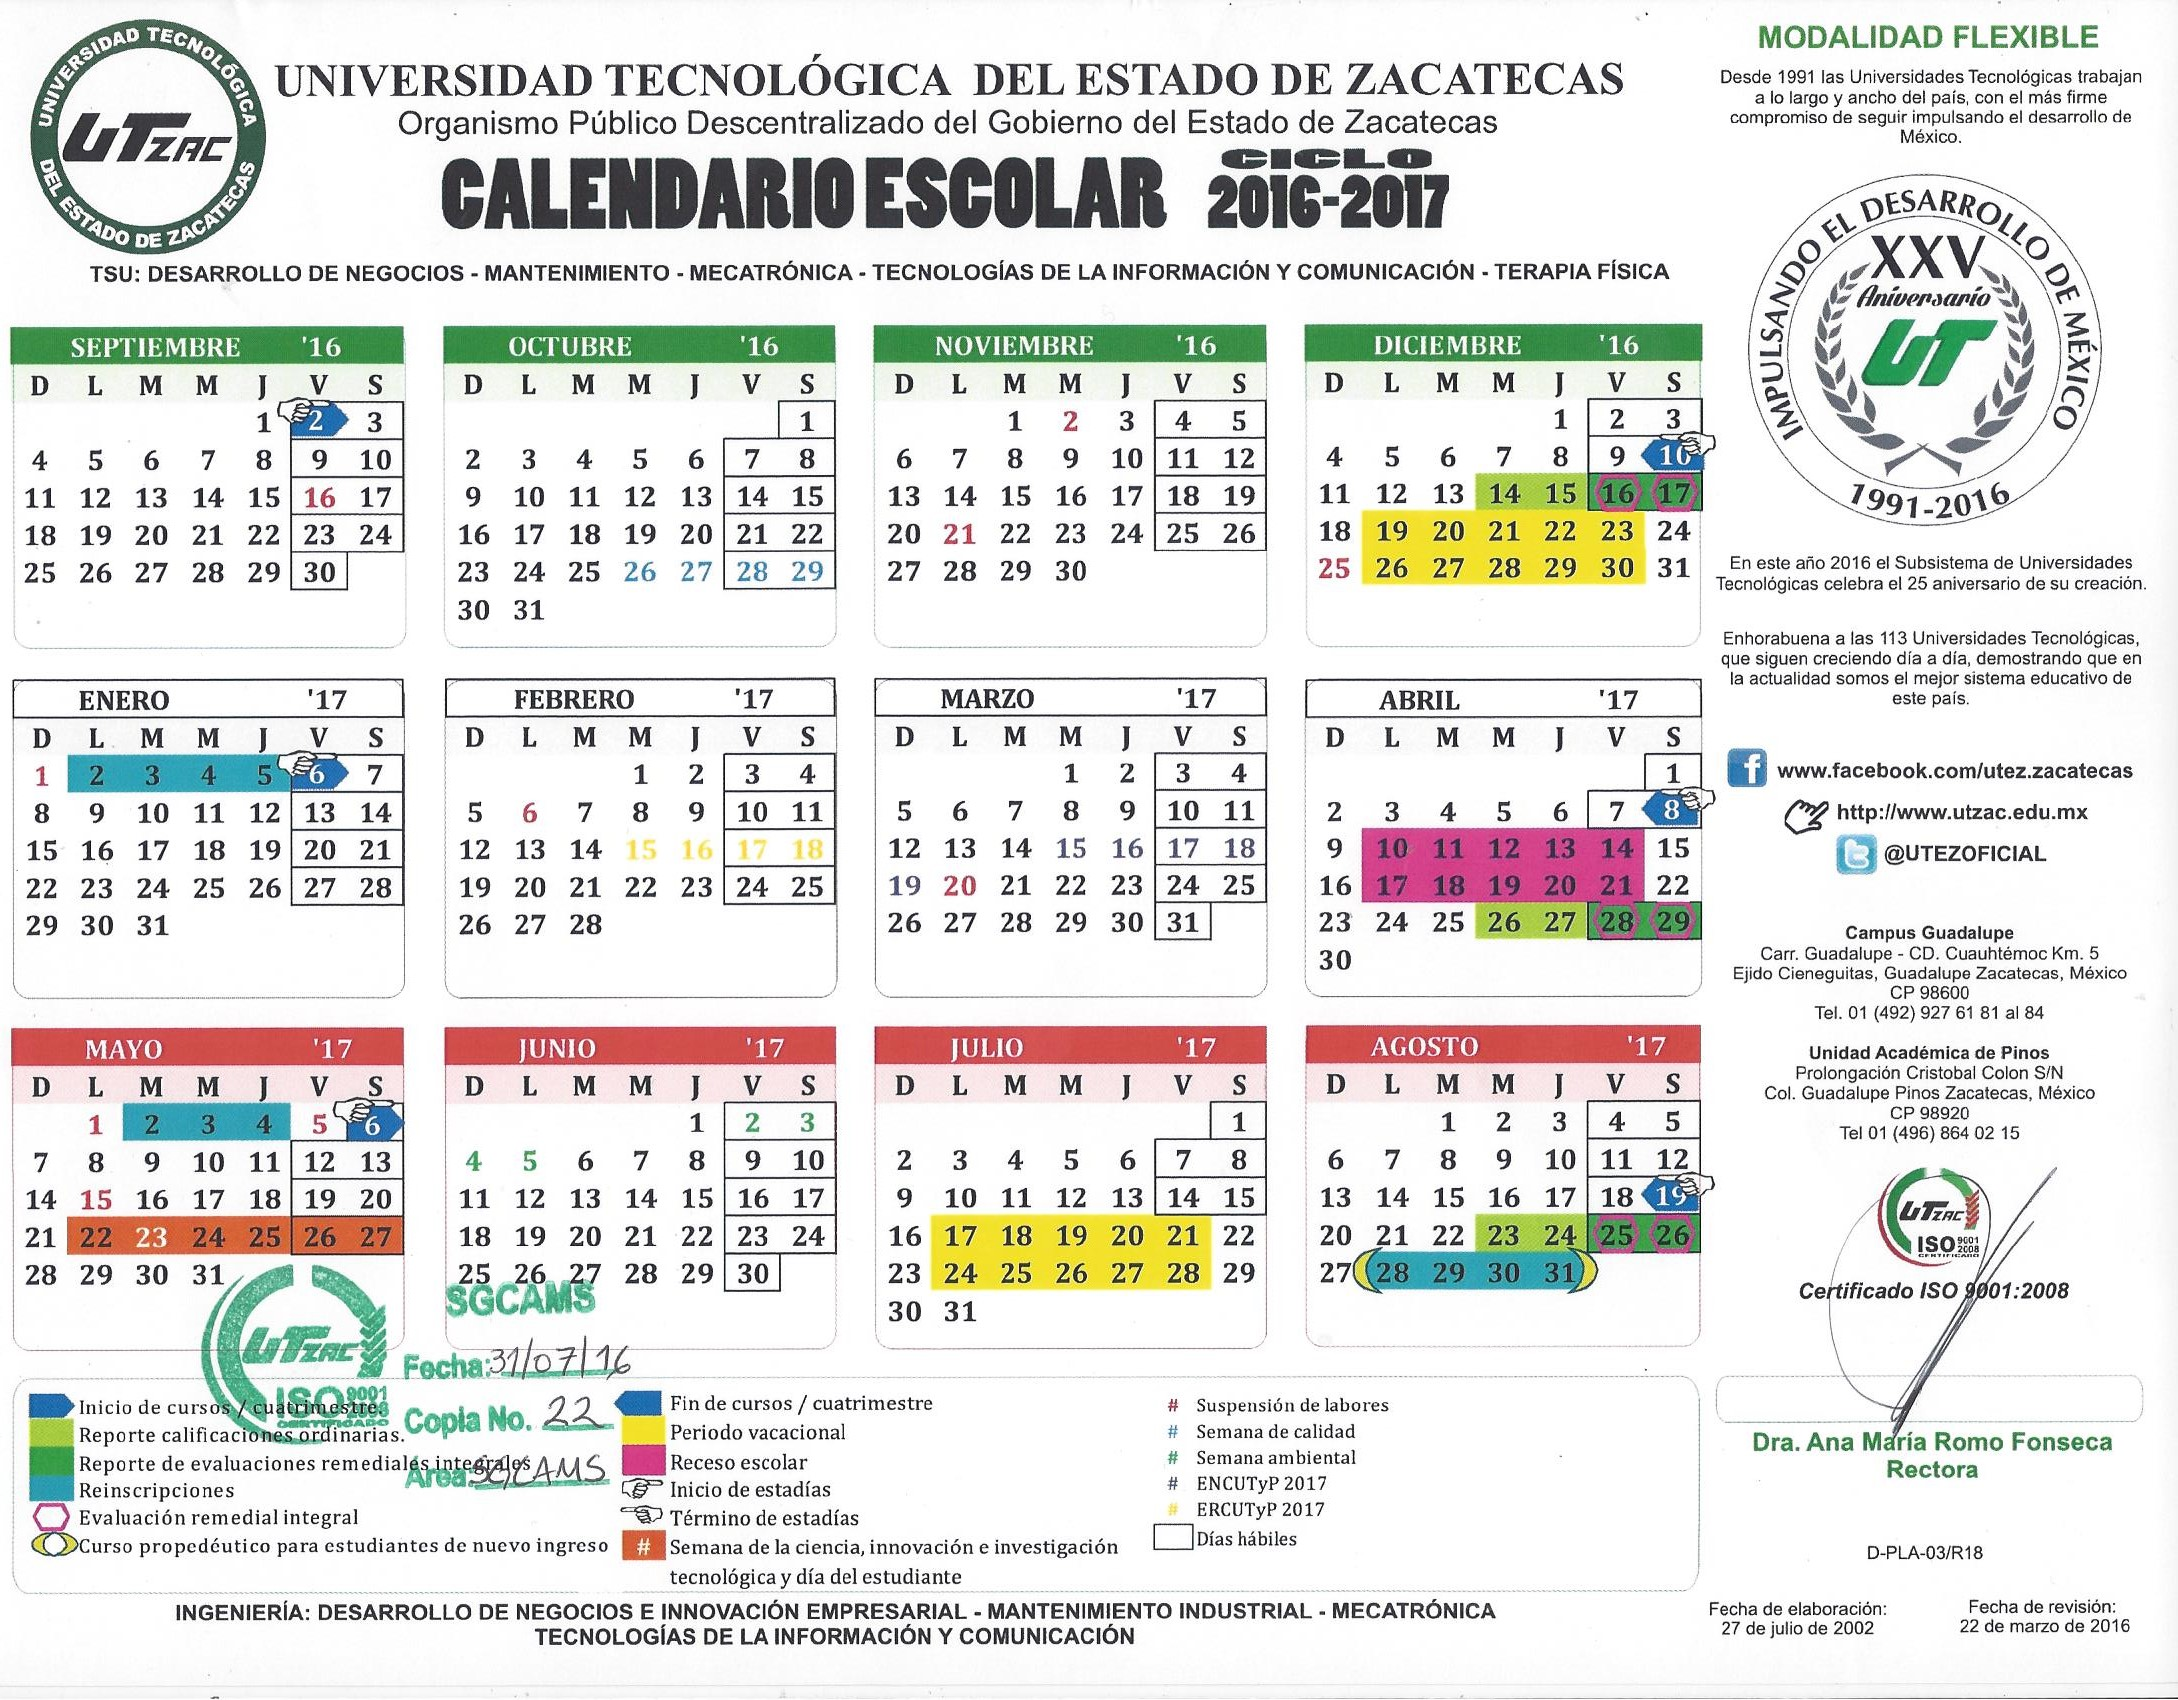 Calendario Oficial del ciclo 2016 – 2017 Mod. Flexible